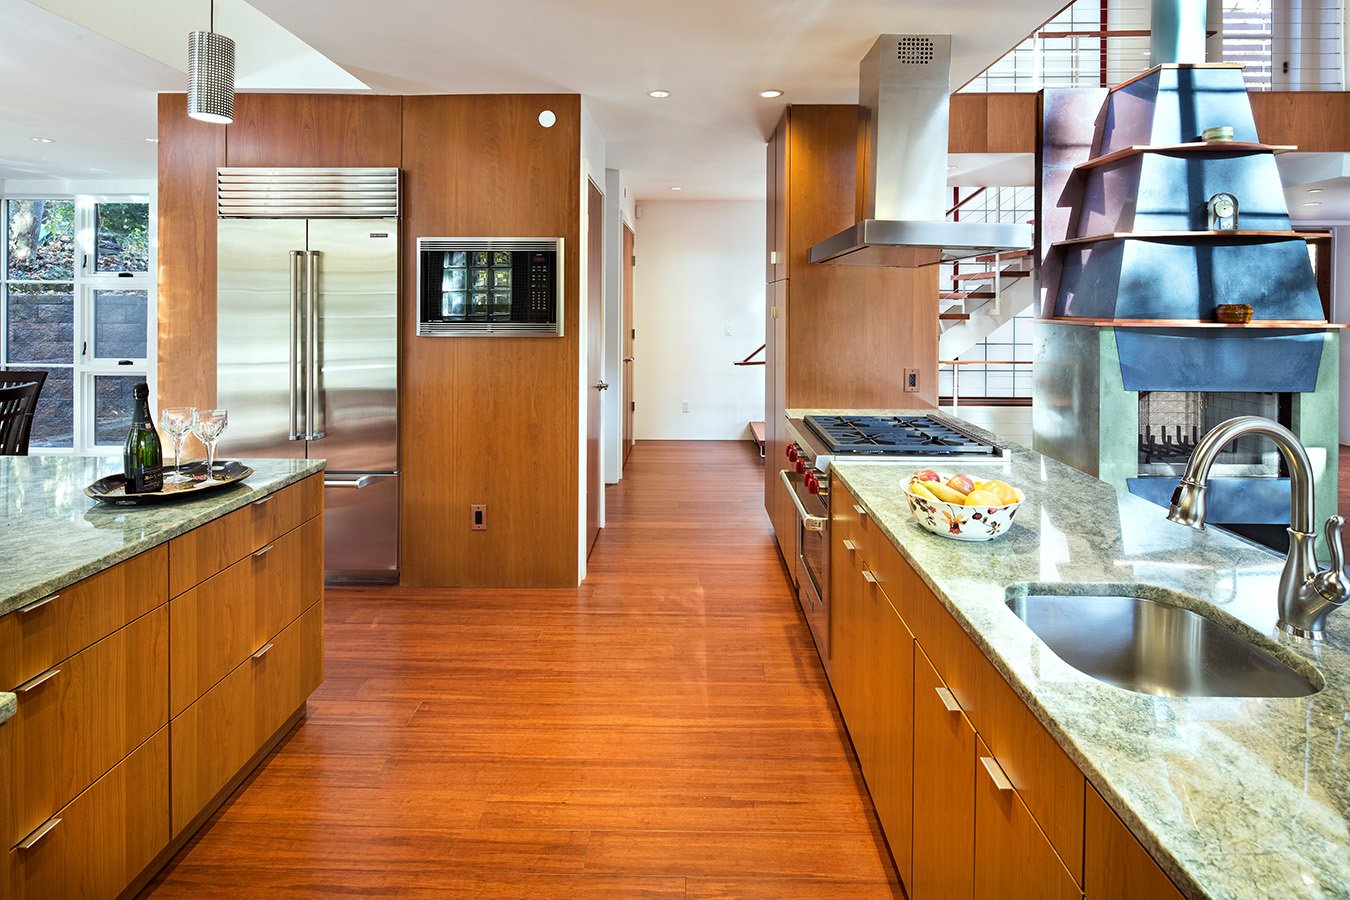 Kitchen, Refrigerator, Cooktops, Range, Range Hood, Microwave, Dishwasher, Granite, Wood, Medium Hardwood, Mosaic Tile, Ceiling, Pendant, Undermount, and Concrete Kitchen  Best Kitchen Microwave Range Hood Wood Pendant Medium Hardwood Photos from Home for Sale: Takoma Park House